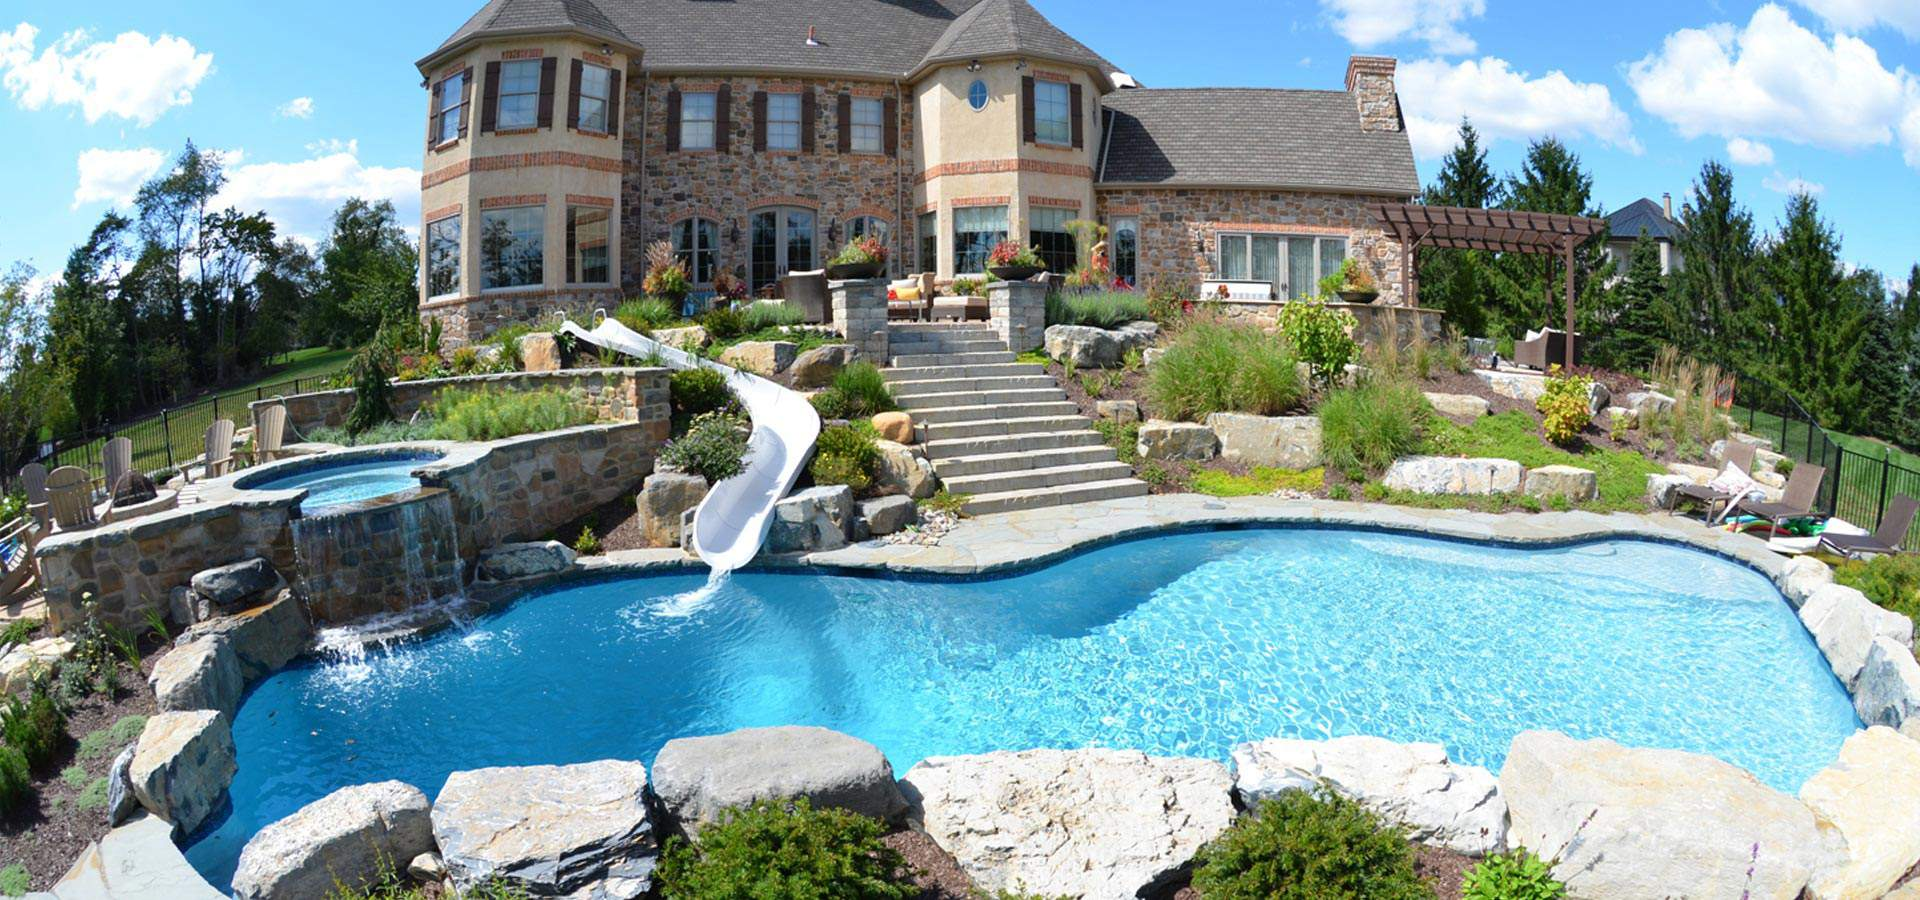 1 pool builder in lehigh valley pa best inground pools for Best home swimming pools